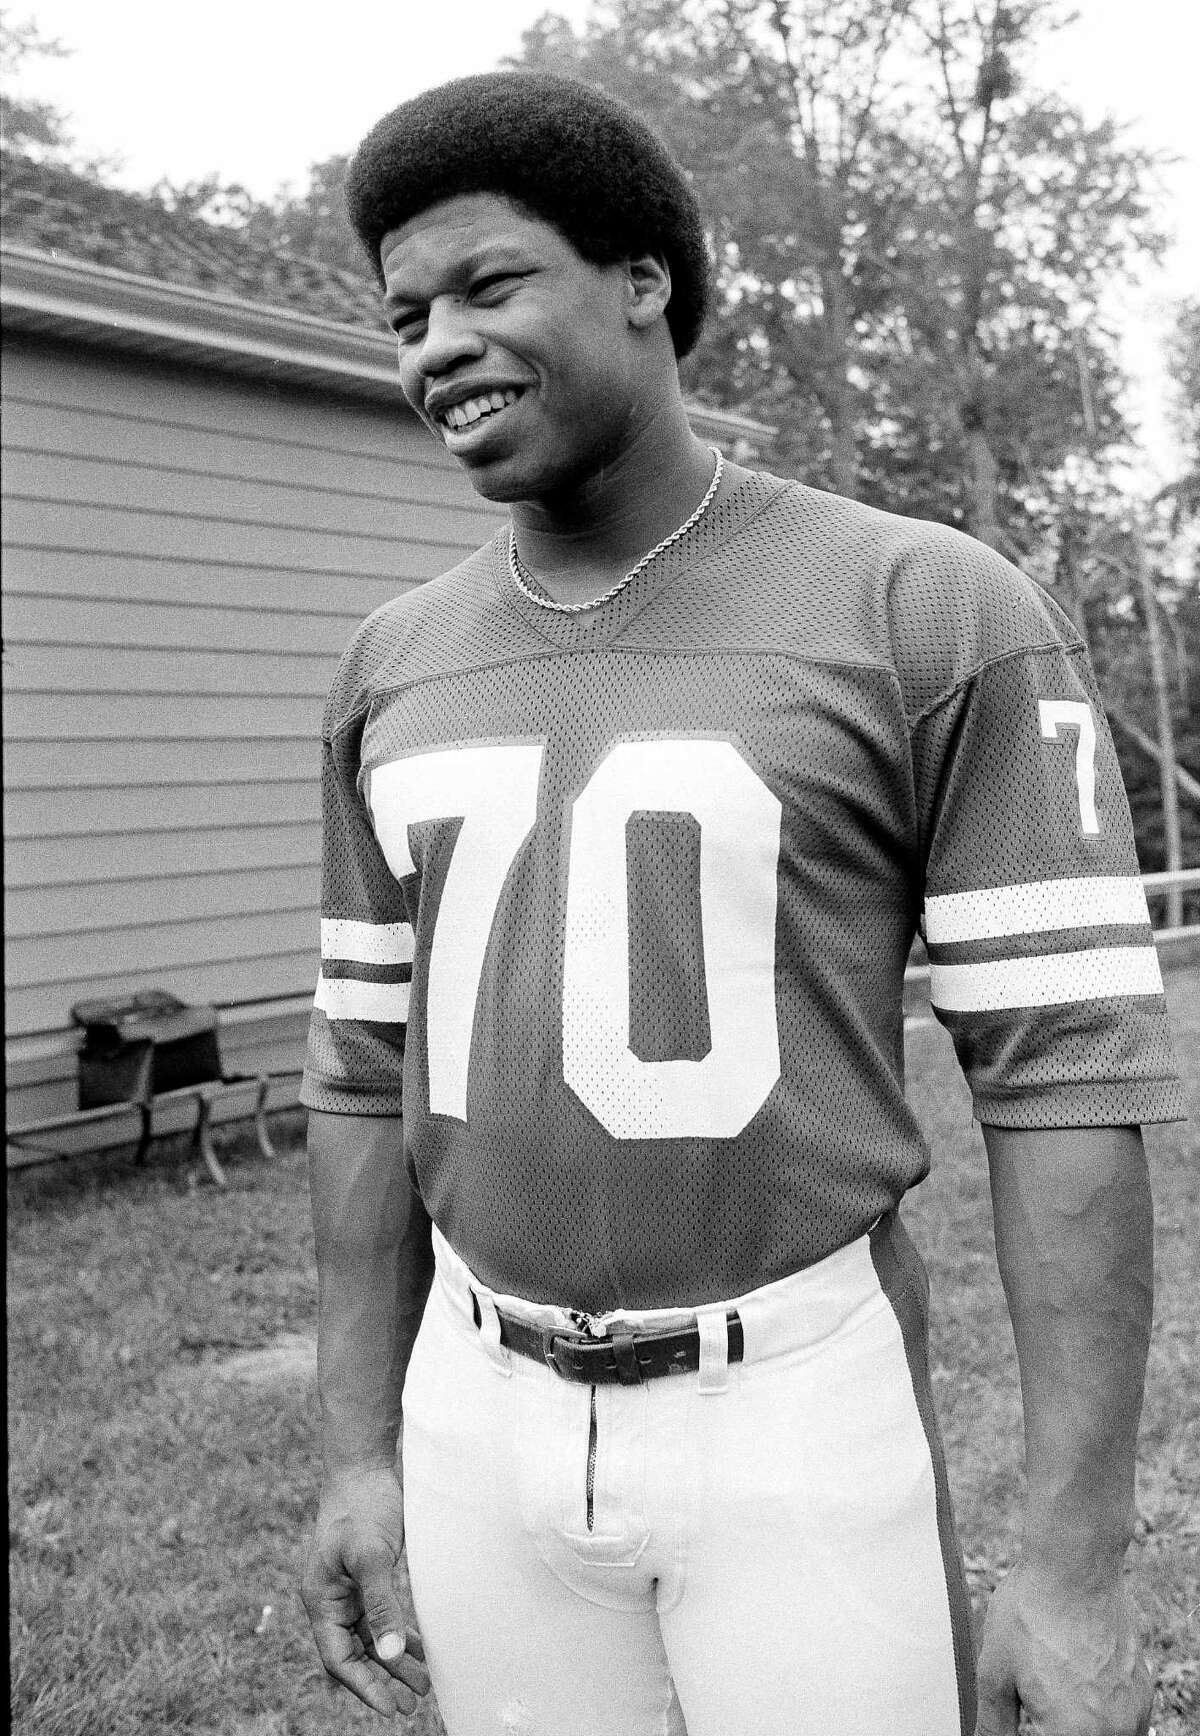 Gary Jeter, defensive end of the New York Giants, is shown here in 1978.